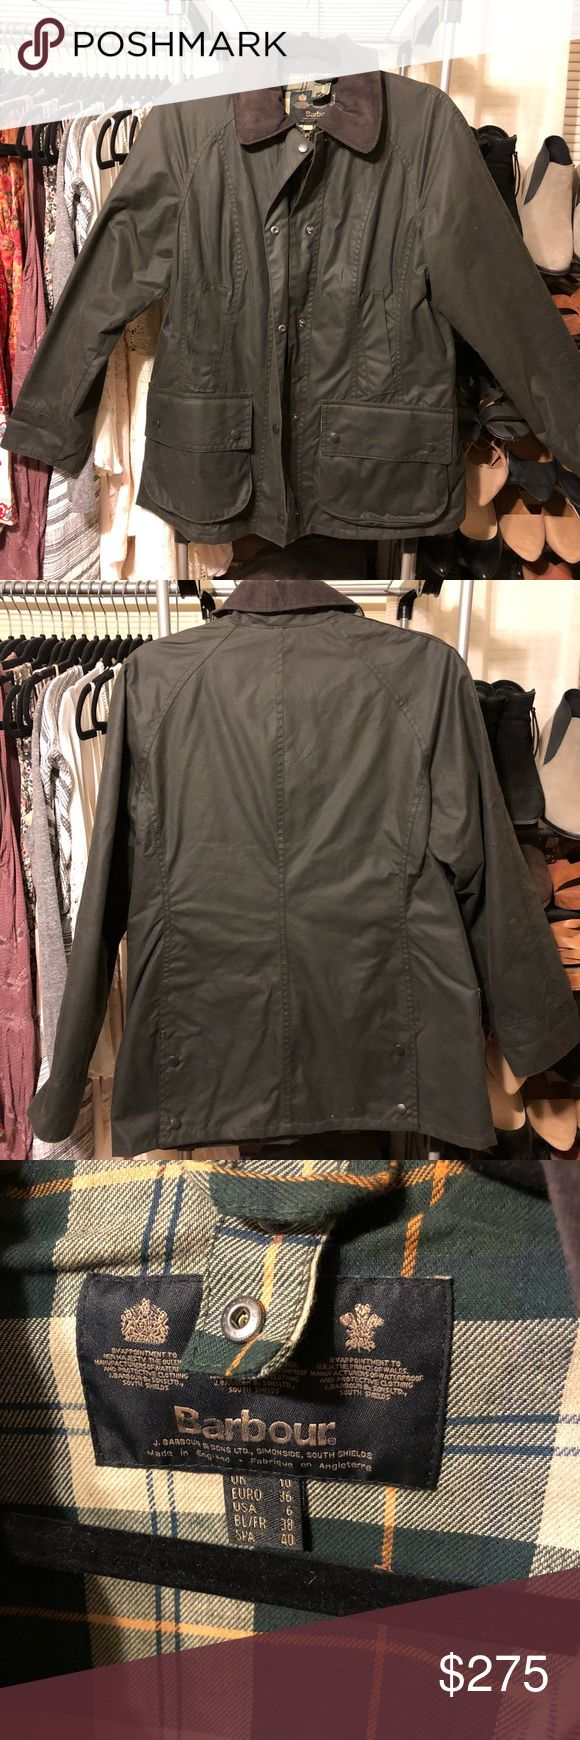 Barbour Waxed Jacket Great Jacket, worn once. Basically brand new! Barbour Jackets & Coats